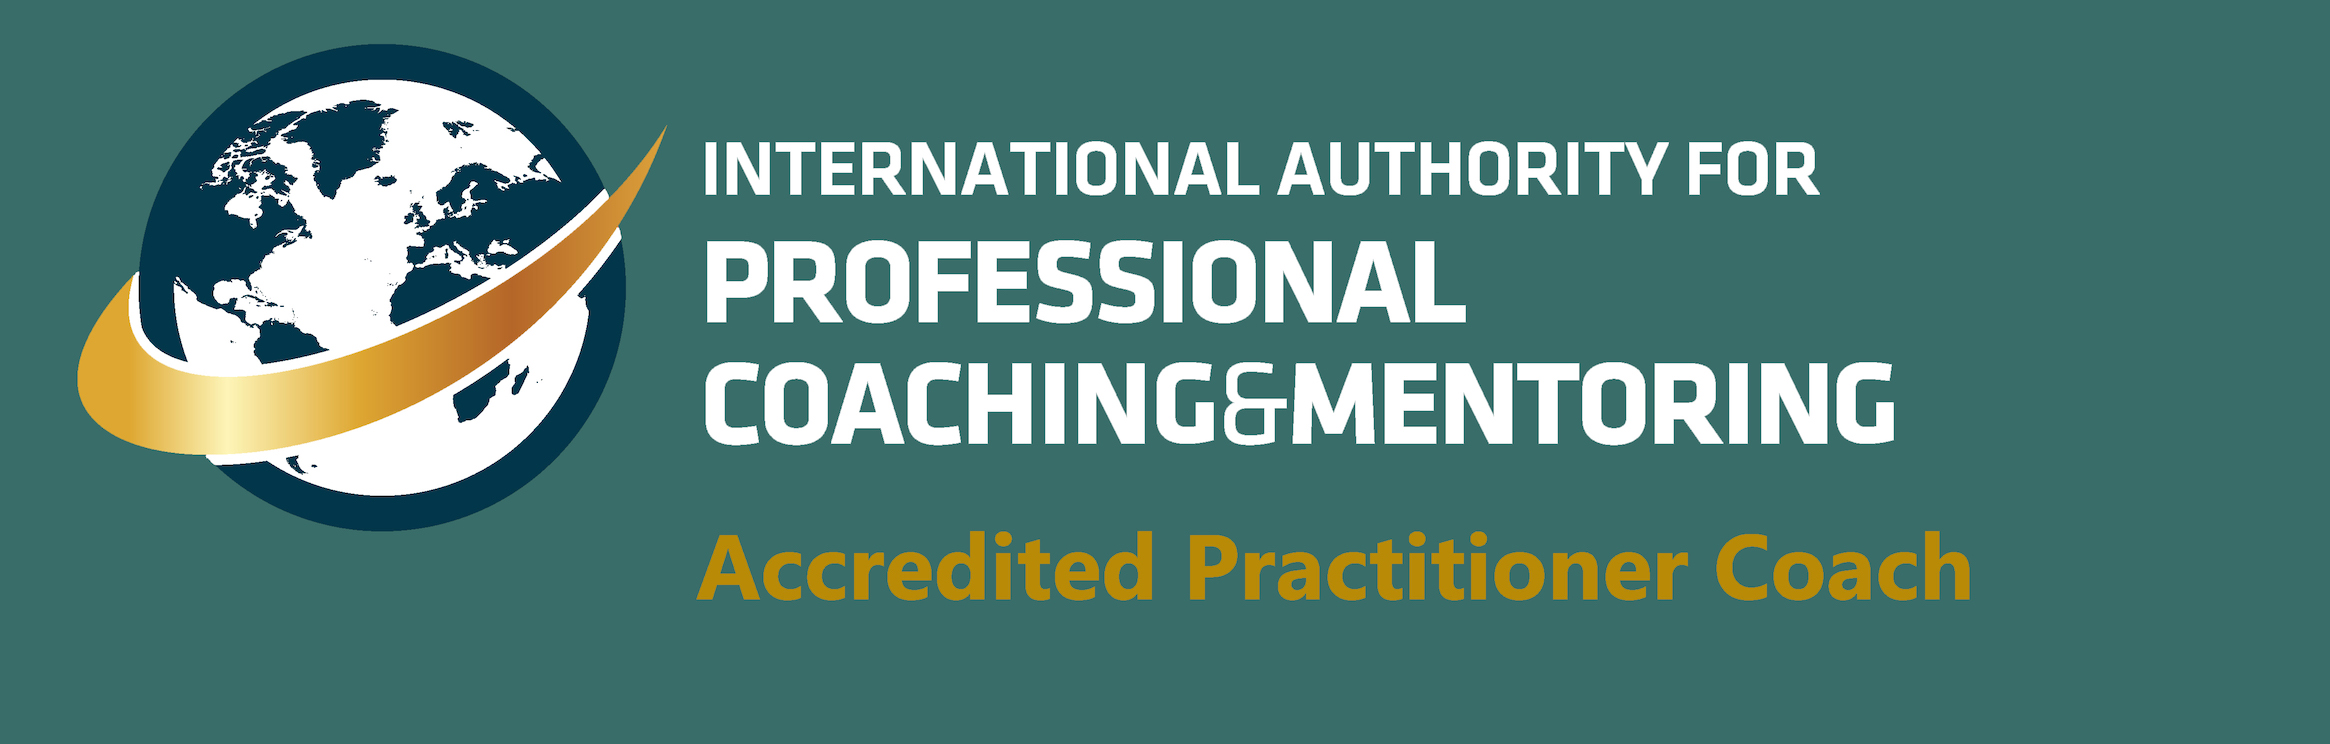 IAPC&M Life Coaching Regulator